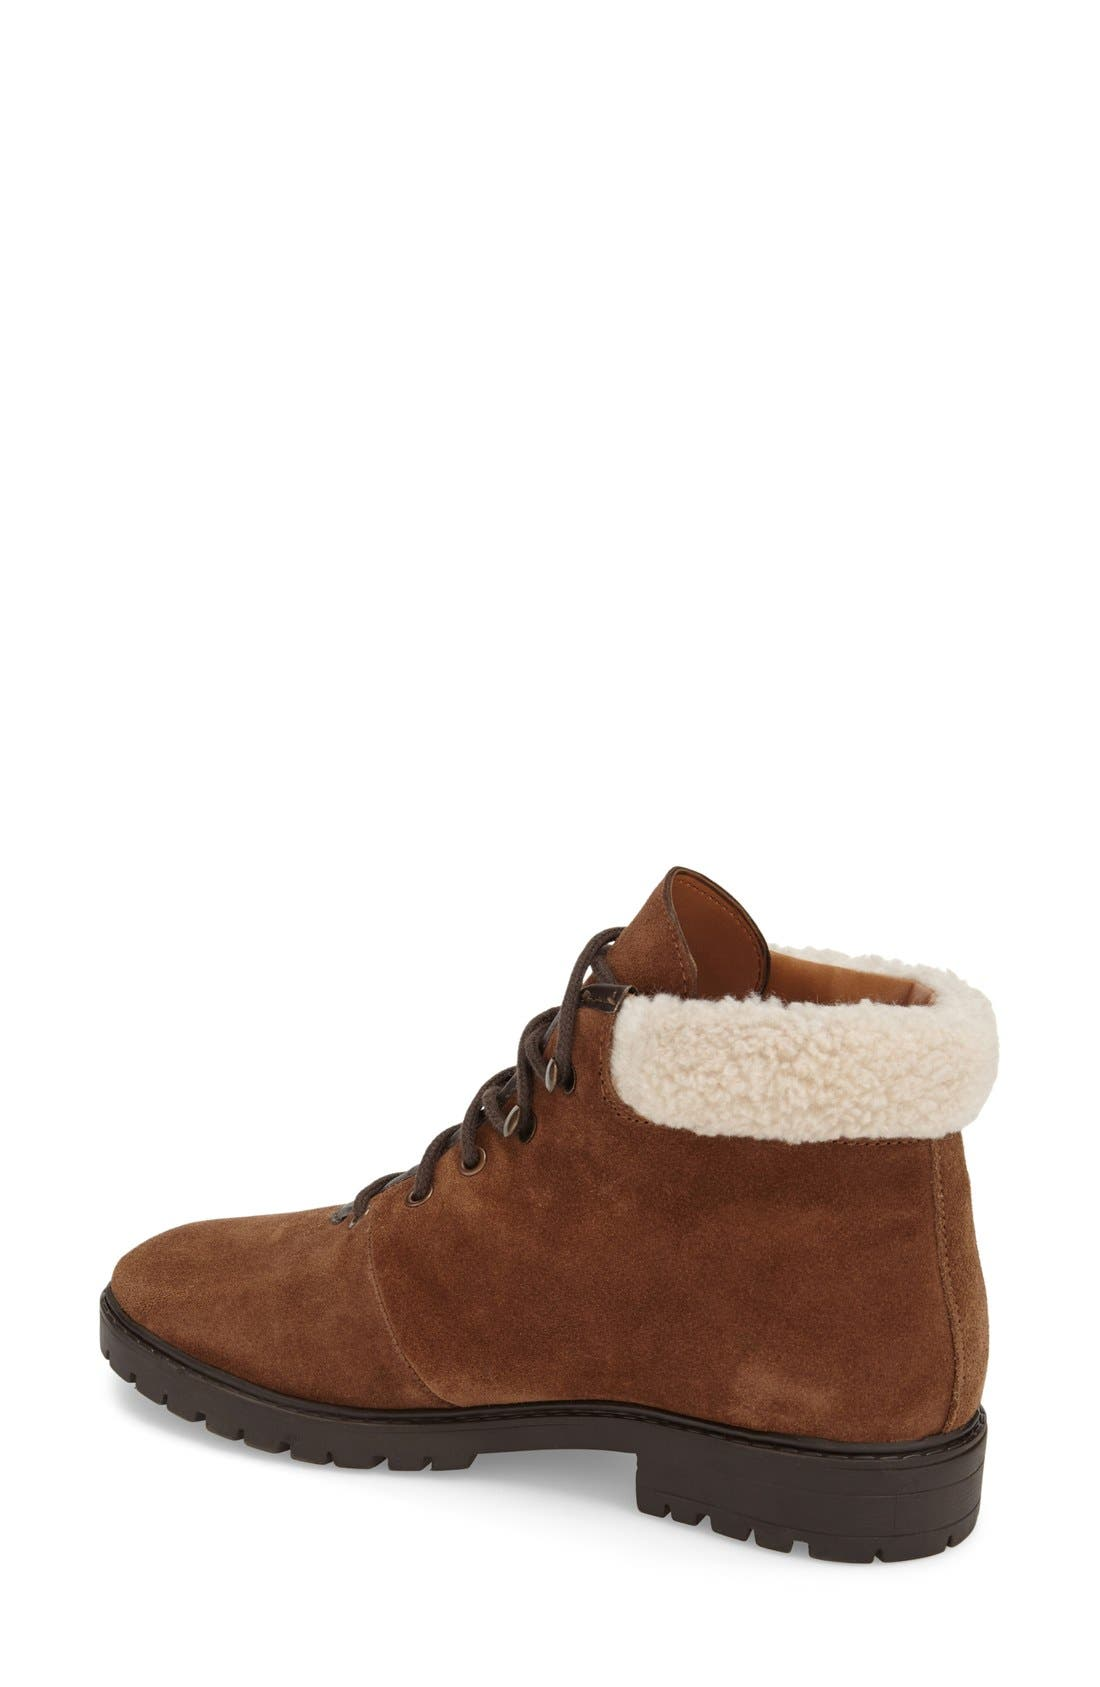 Alternate Image 2  - Topshop Lace-Up Ankle Boots with Faux Fur Trim (Women)